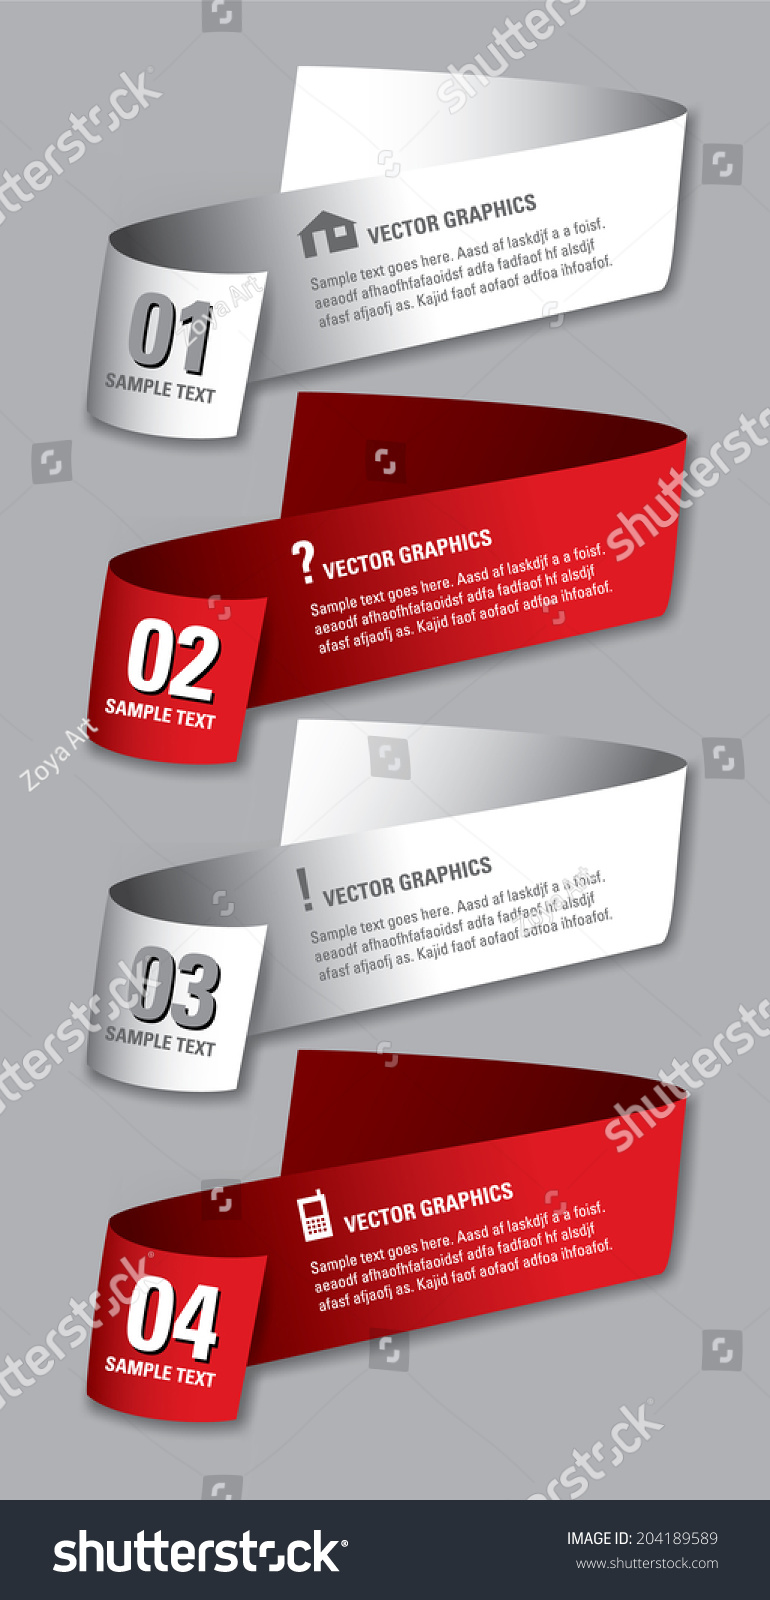 3d Numbered Banners Vector Eps10 Illustration Stock Vector (2018 ...